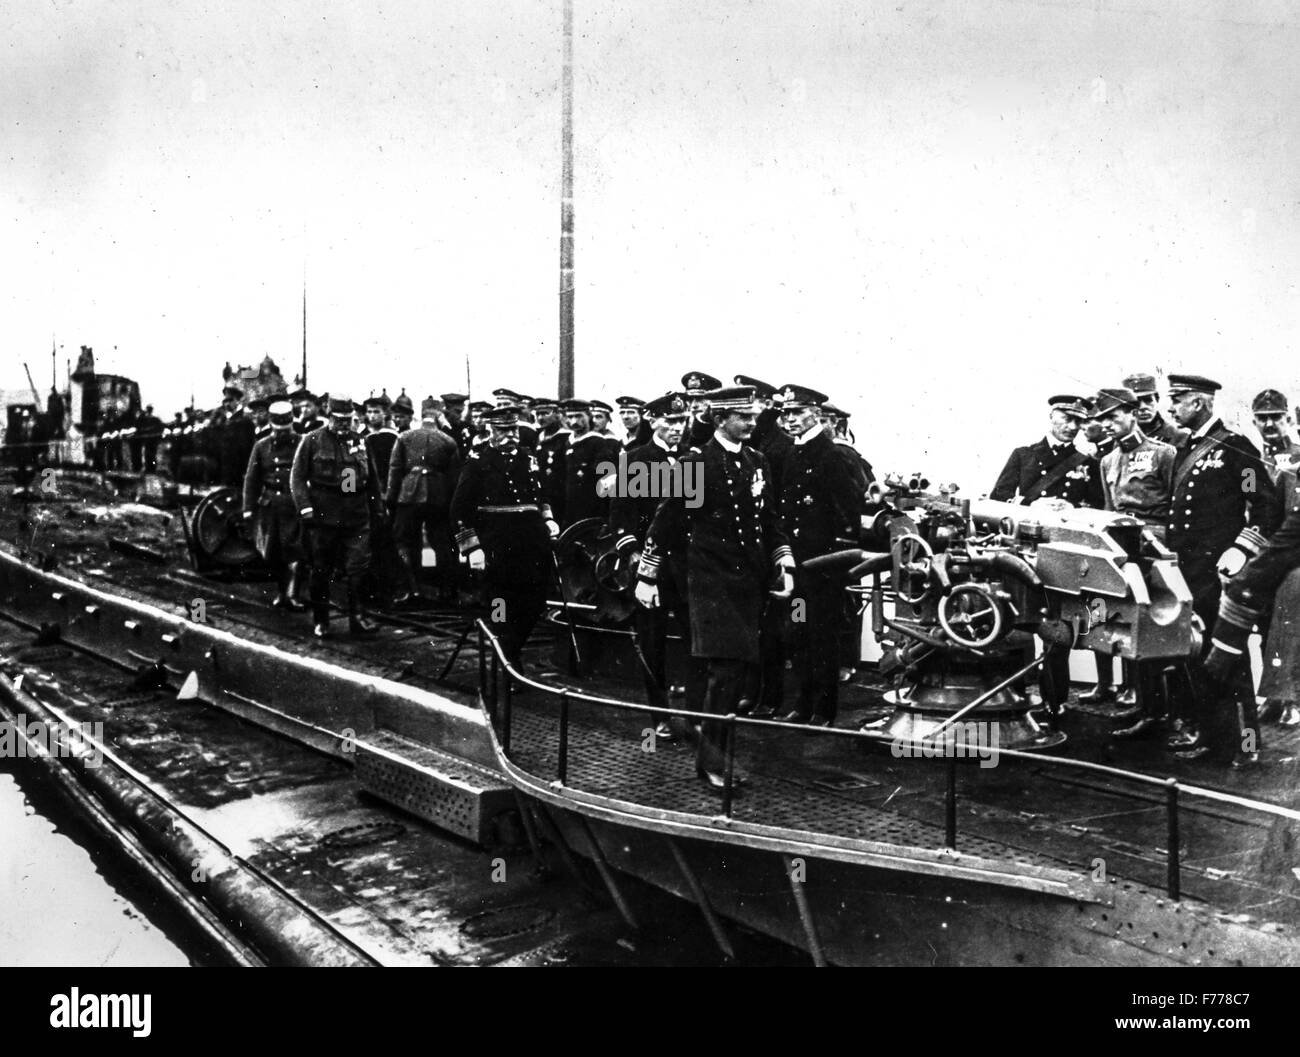 the Emperor of Austria Charles I visited a naval base in Pula ,1915-1918 - Stock Image